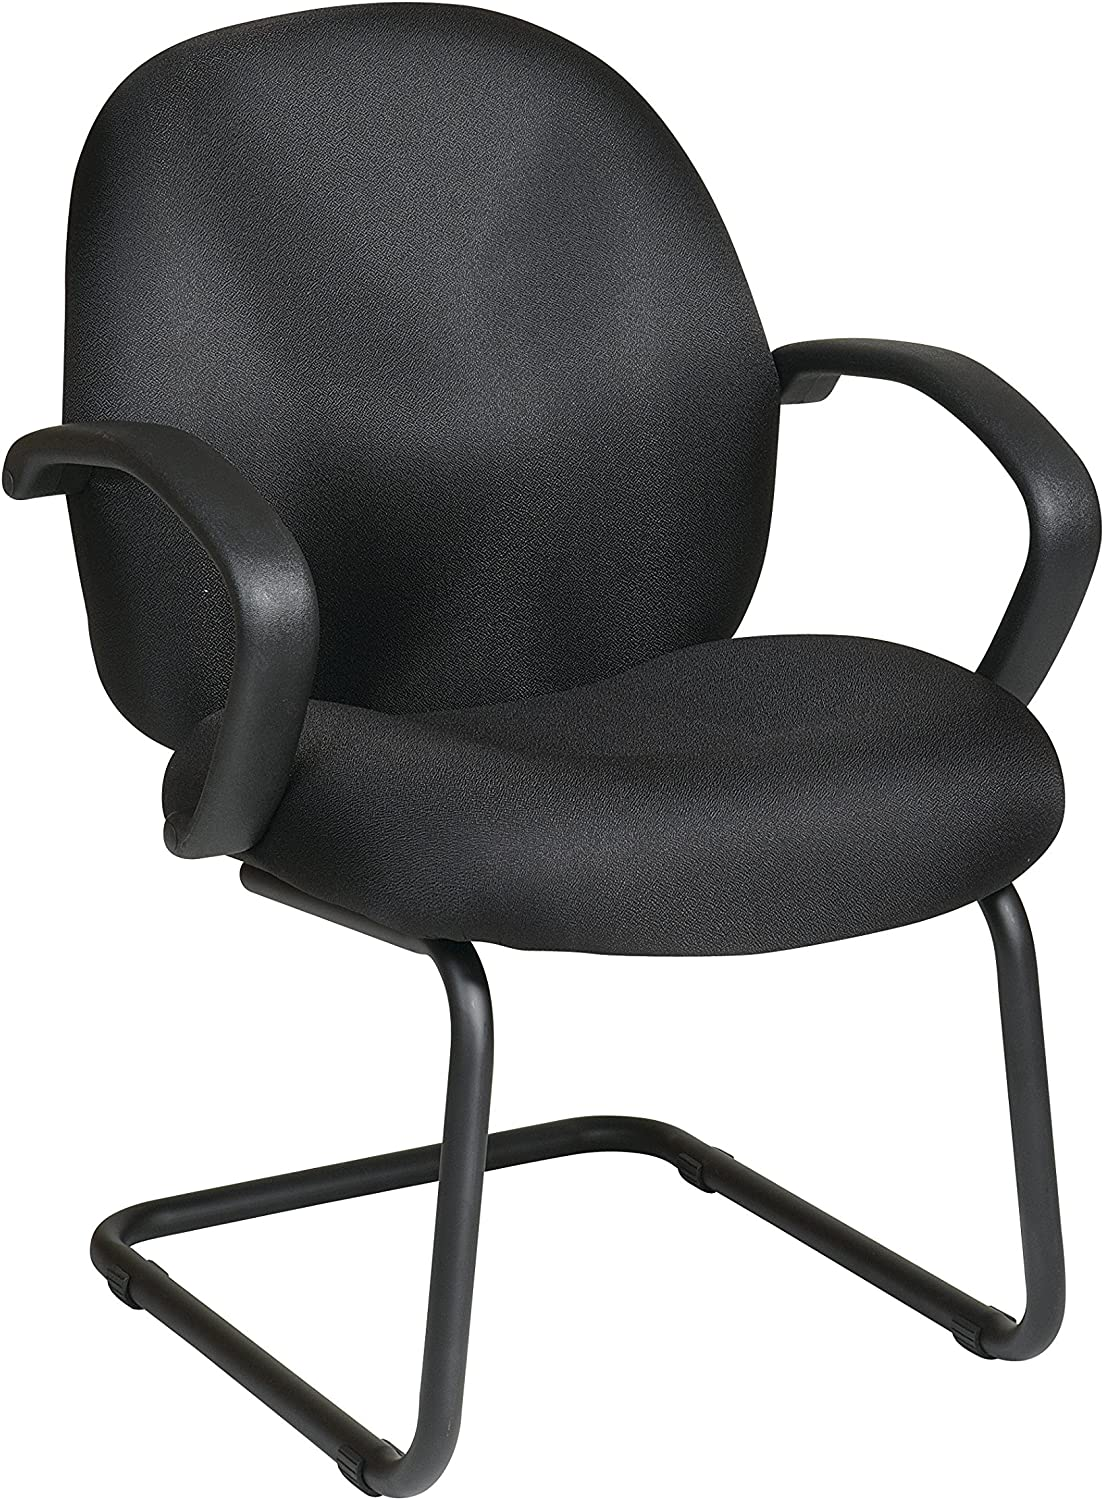 Work Smart Office Star Conference Visitors Chair with Padded Fabric Contour Seat and Back, Fixed Arms, and Sled Base, Black